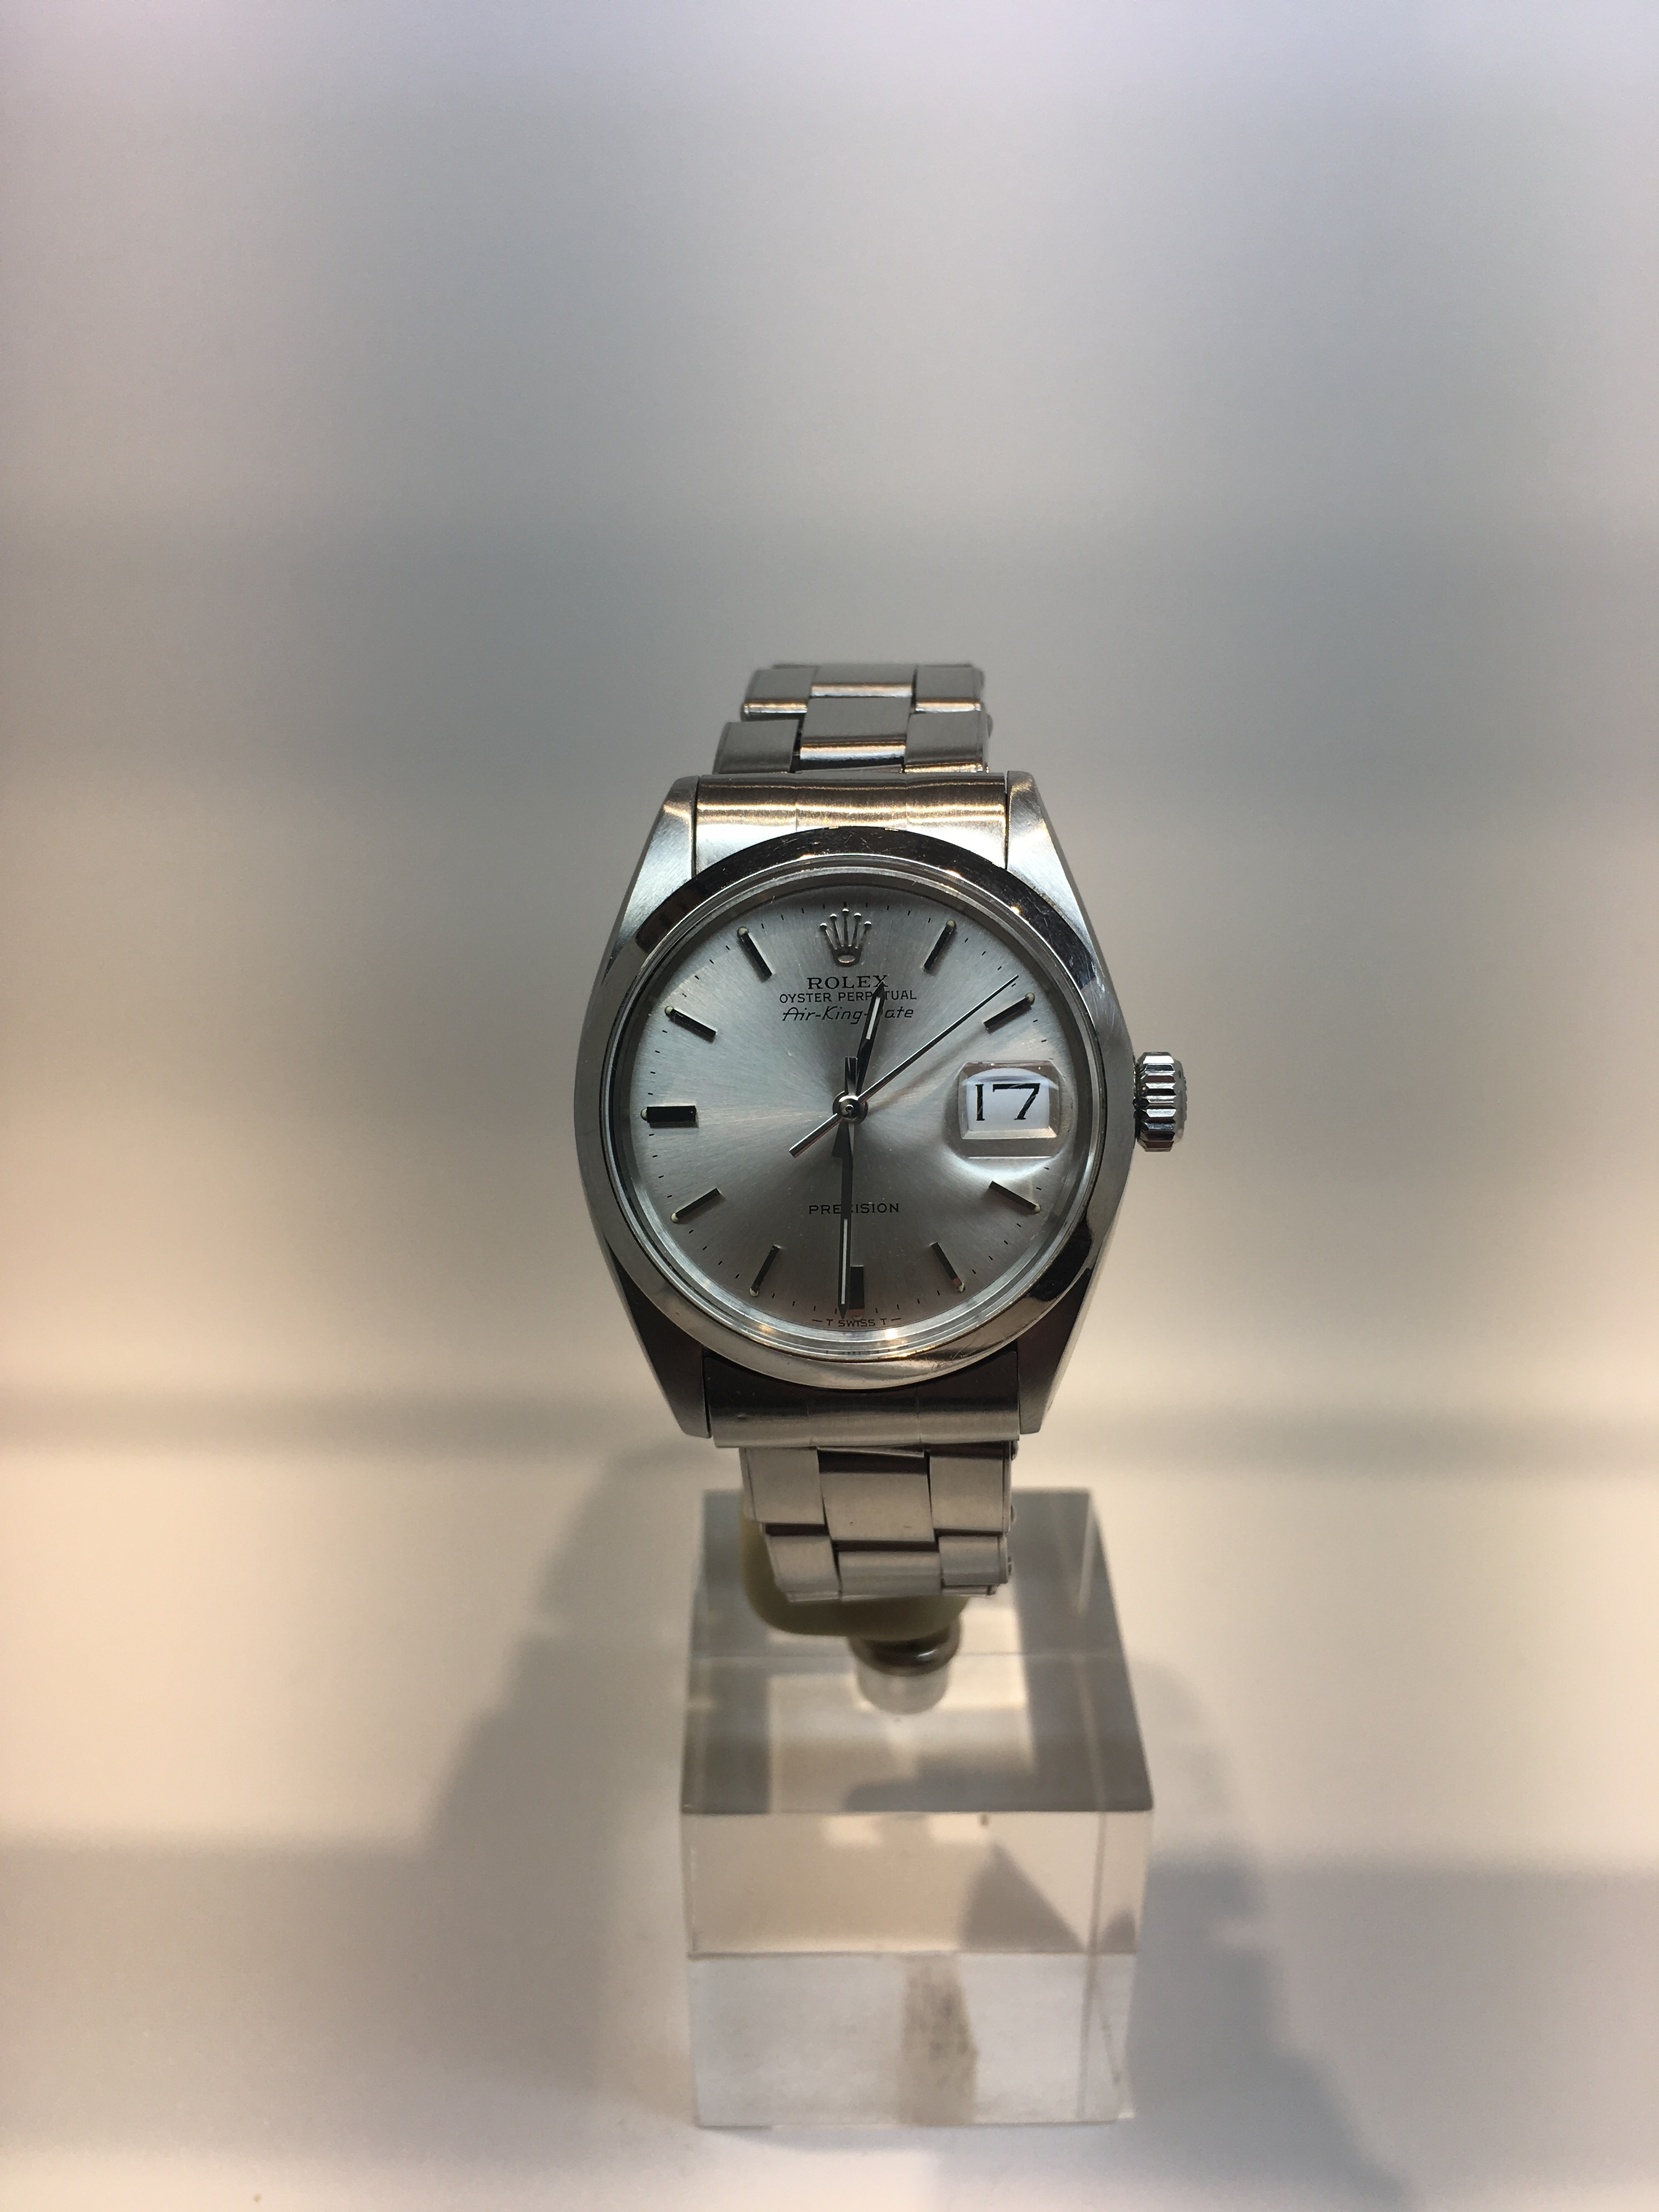 Vintage Rolex Oyster Perpetual Air King Cal 1520 C 1966